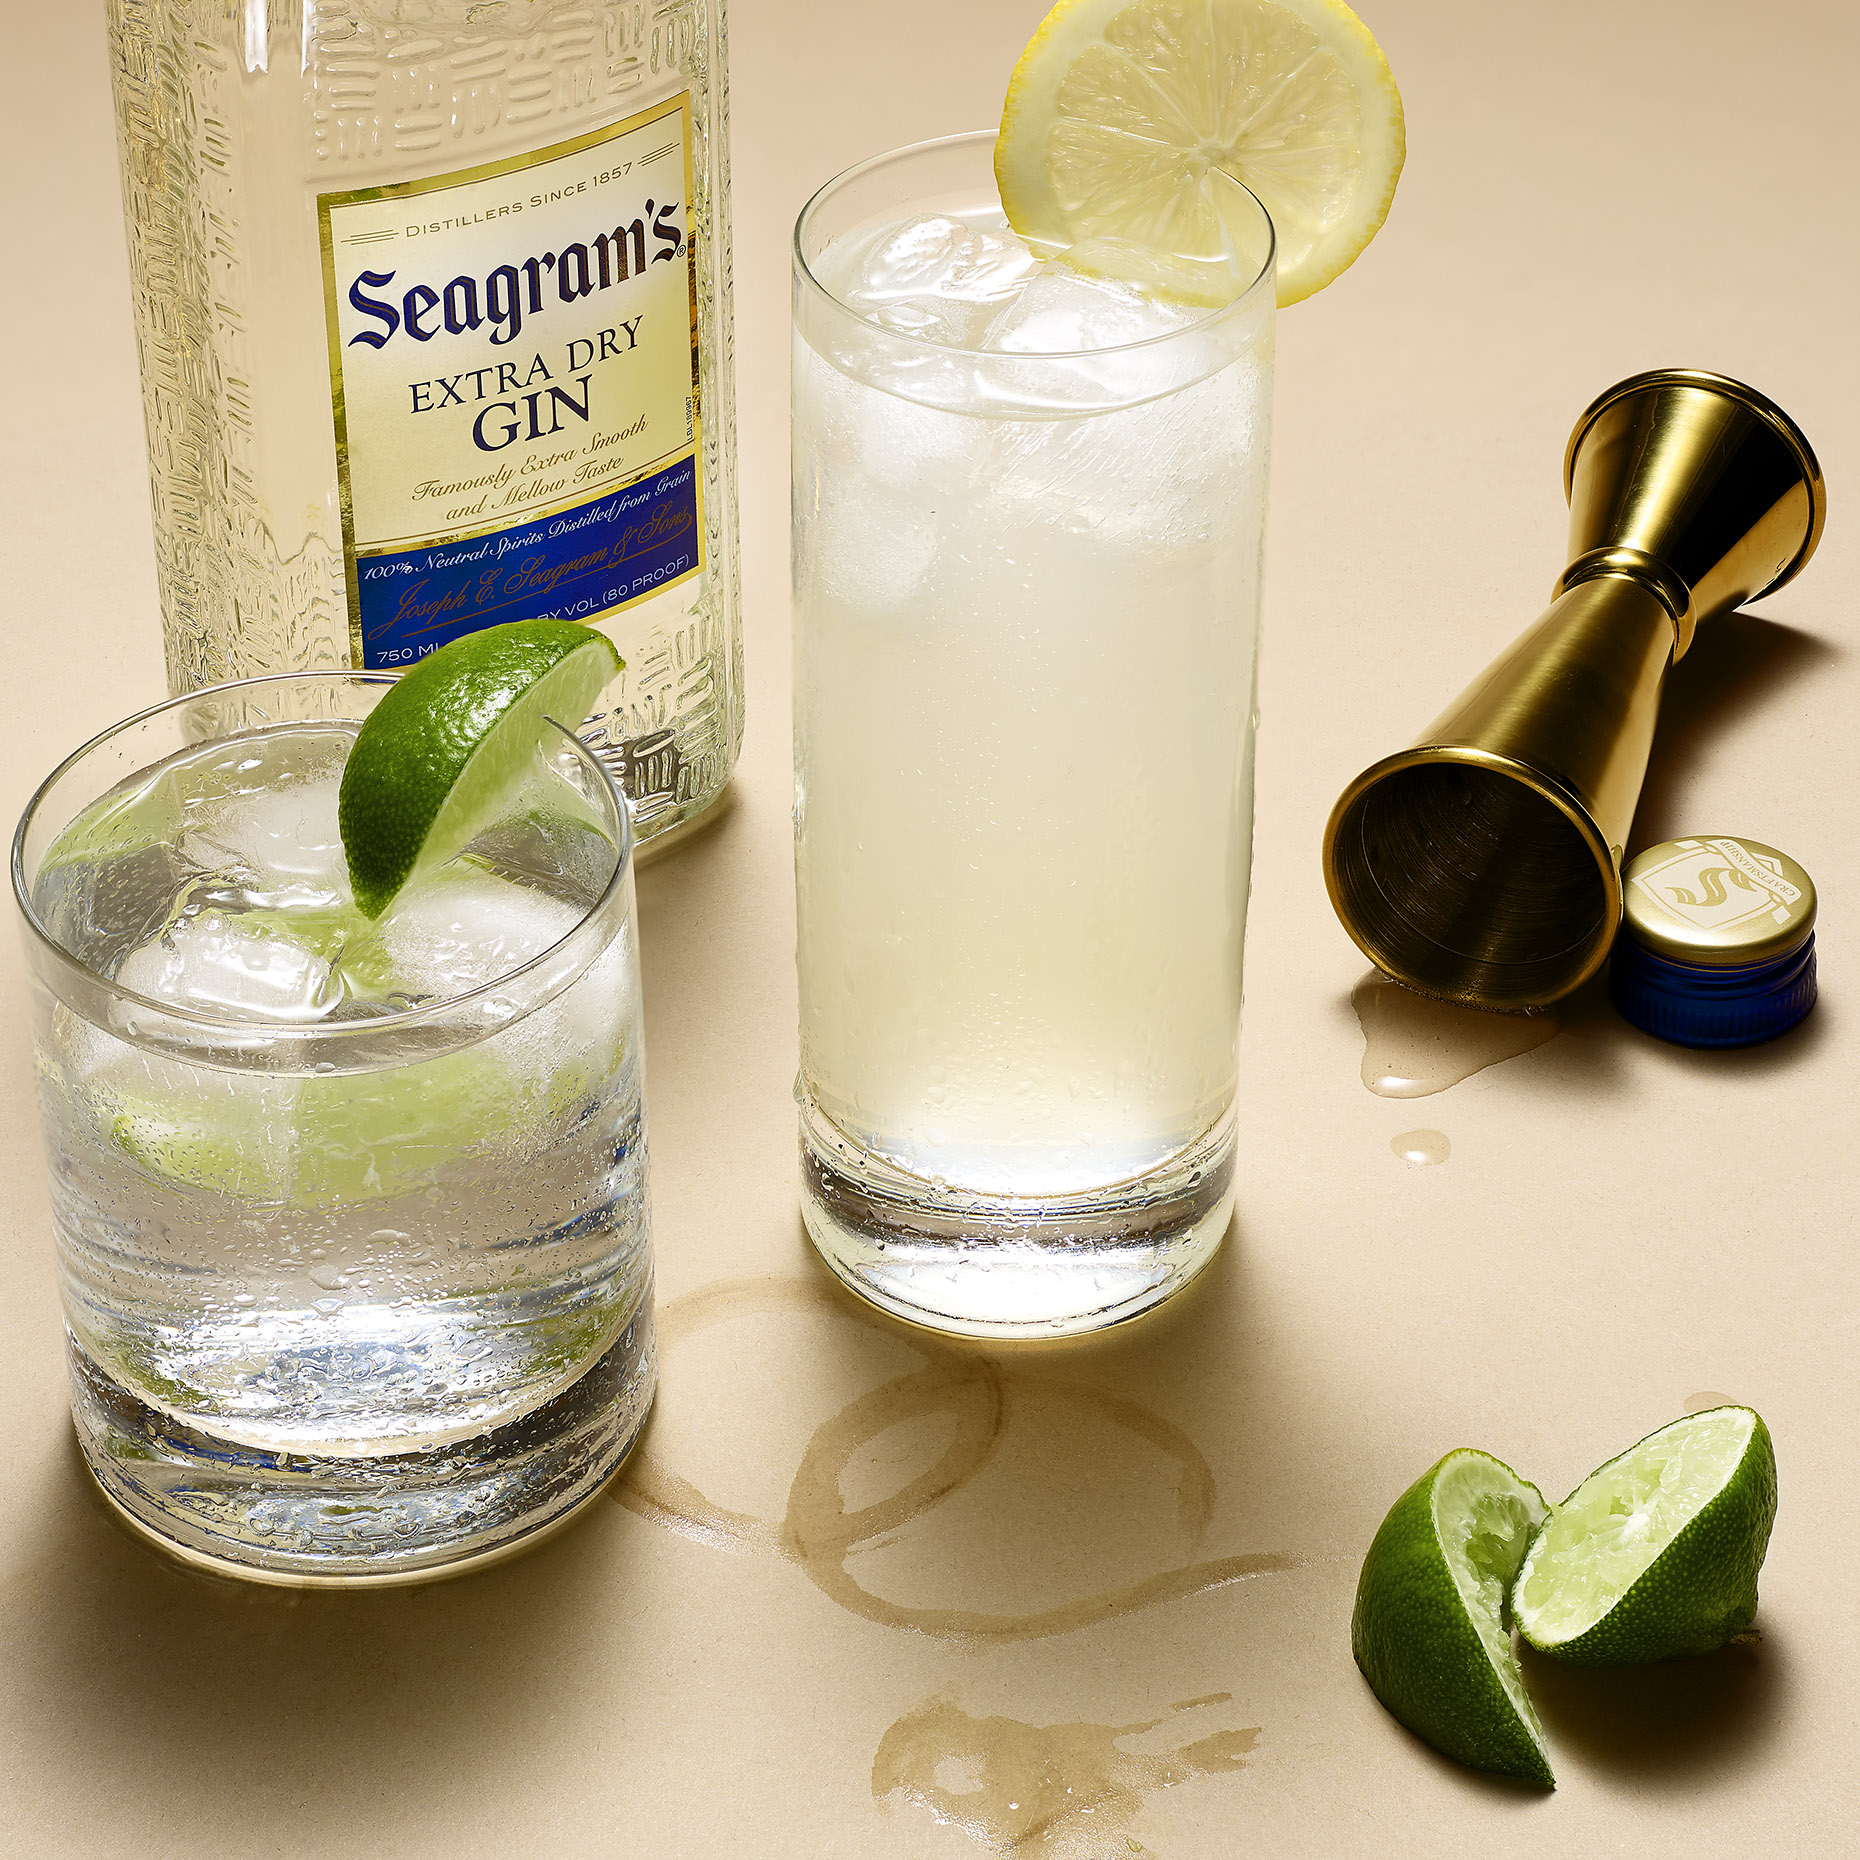 STILL LIFE PARTY SCENE OF SEAGRAMS GIN TONIC AND LIMES SHOT BY DAVID FILIBERTI